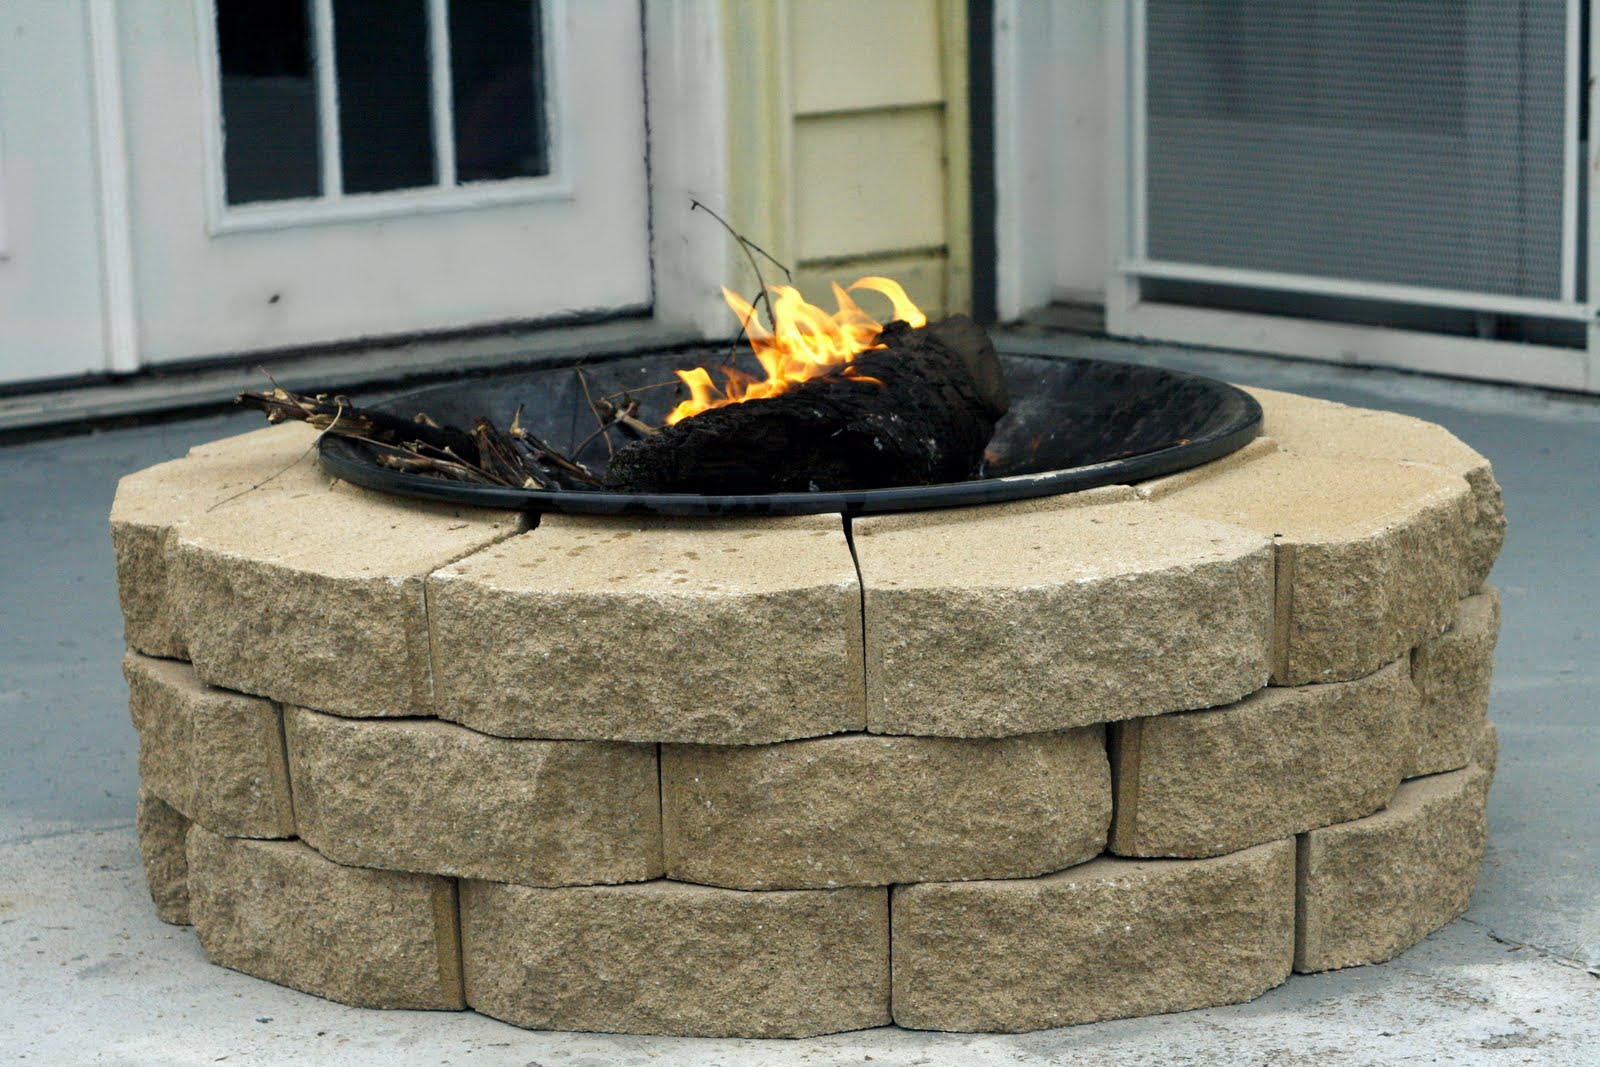 Fire pit pavers ideas fire pit design ideas for Do it yourself fire pit designs